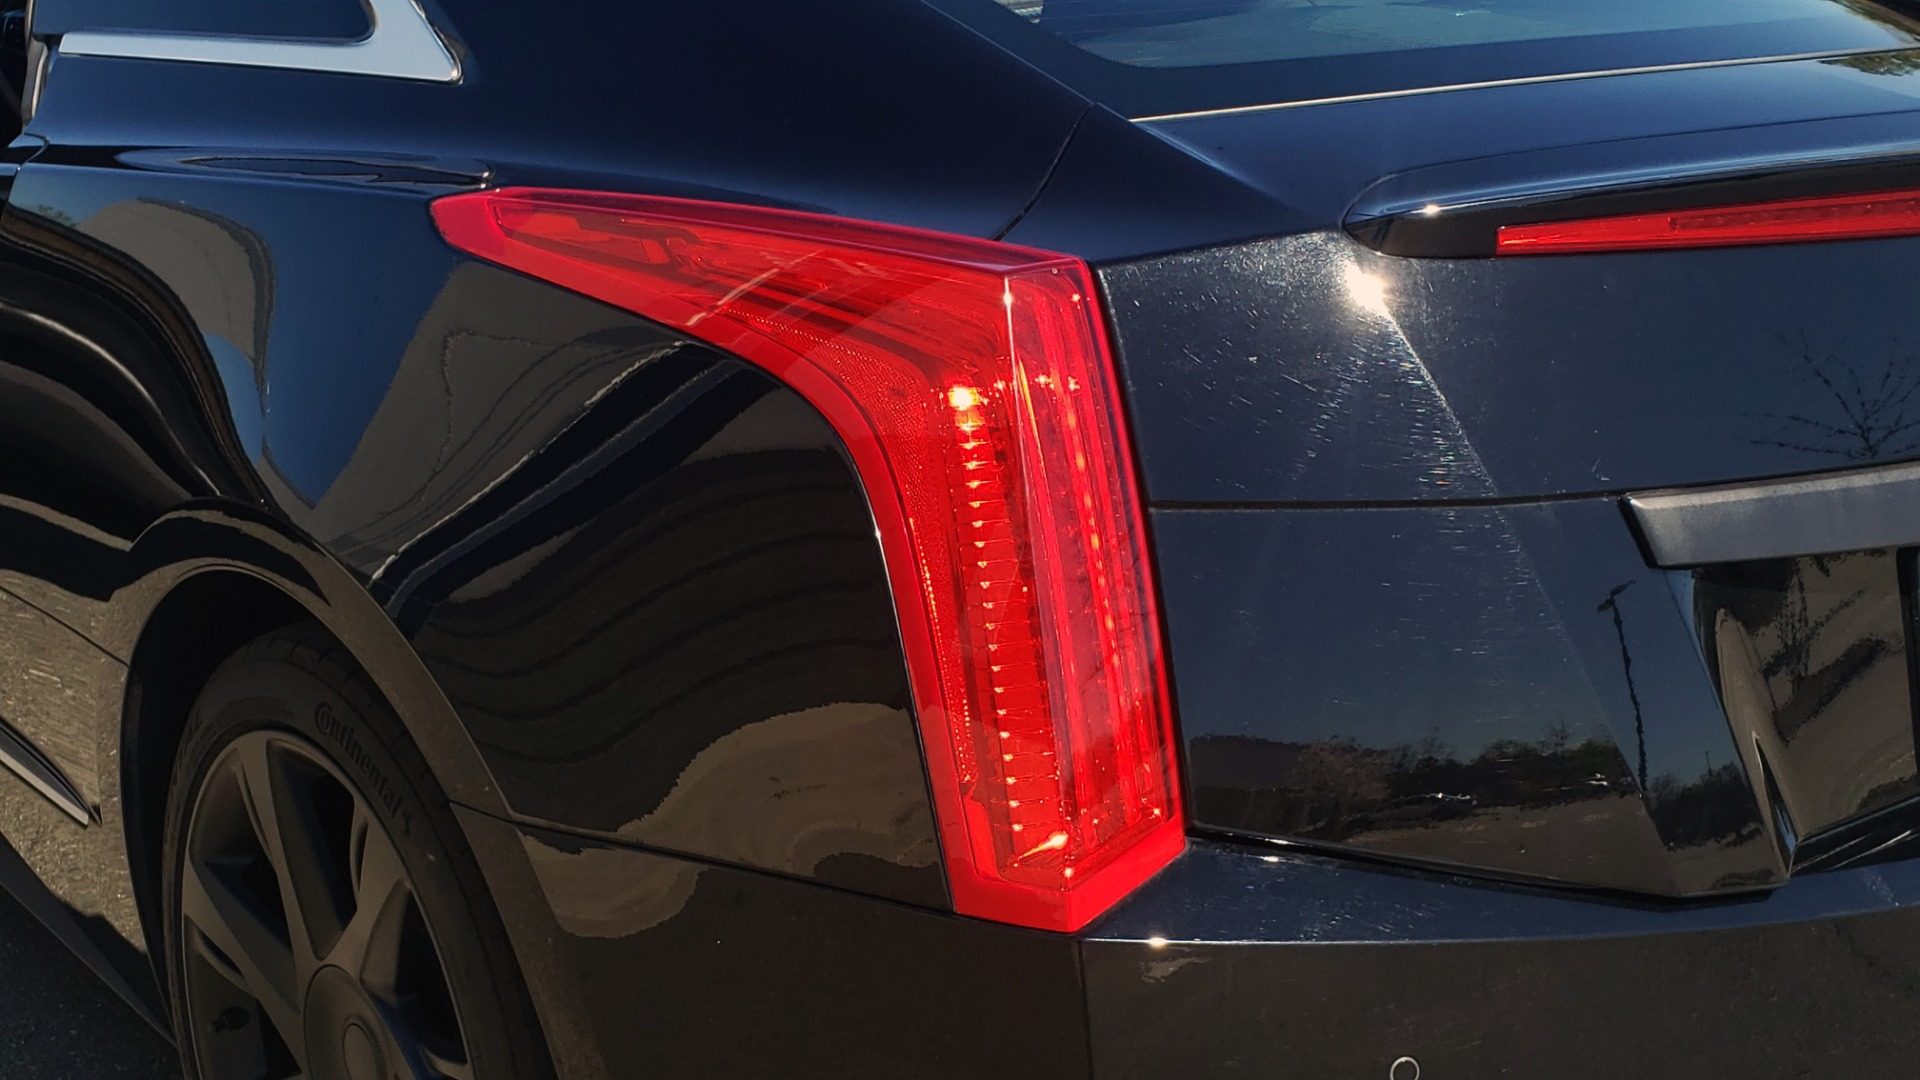 Used 2014 Cadillac ELR 2DR COUPE / HYBRID / NAV / BOSE / HEATED SEATS / REARVIEW for sale $19,995 at Formula Imports in Charlotte NC 28227 25